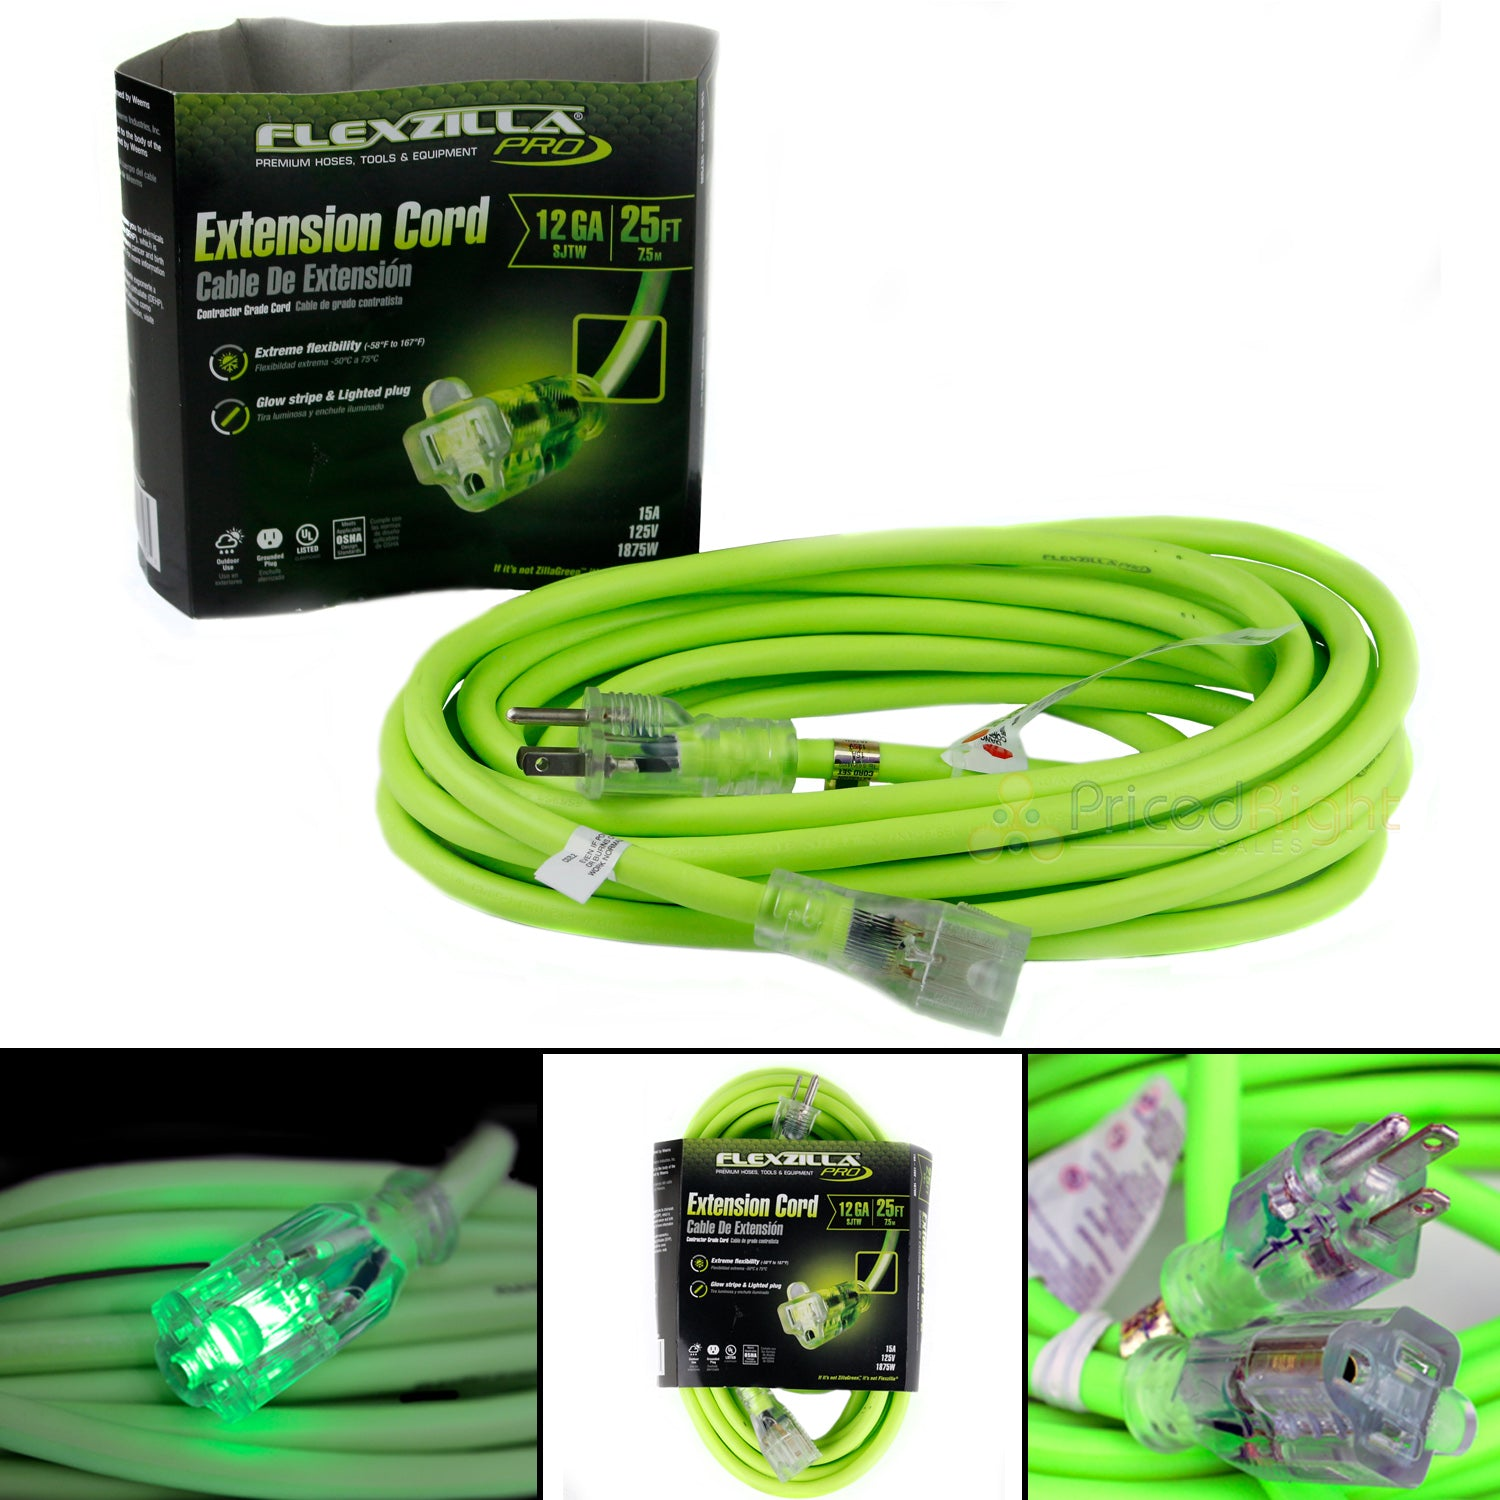 25 ft Flexzilla Pro Electric Extension Cord Power Cable Indoor Outdoor 12 Gauge